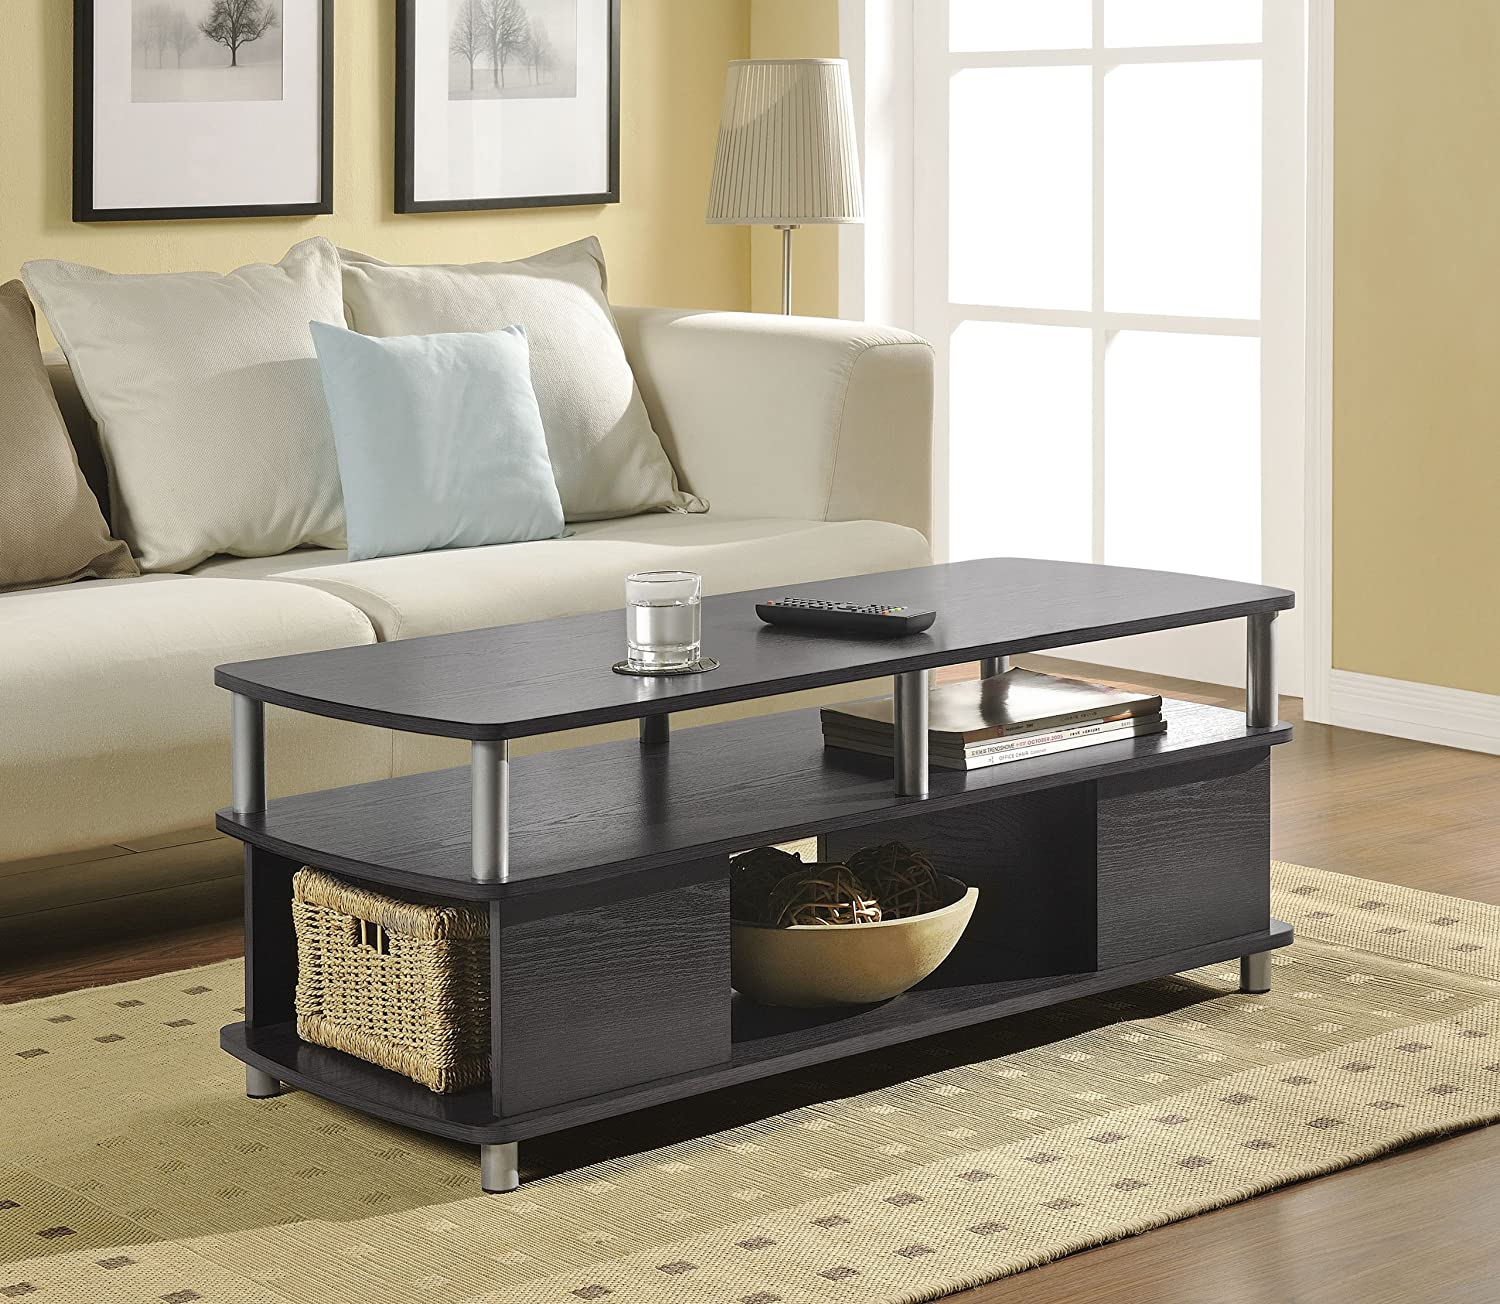 Amazon.com: Ameriwood Home Carson Coffee Table, Espresso: Kitchen U0026 Dining